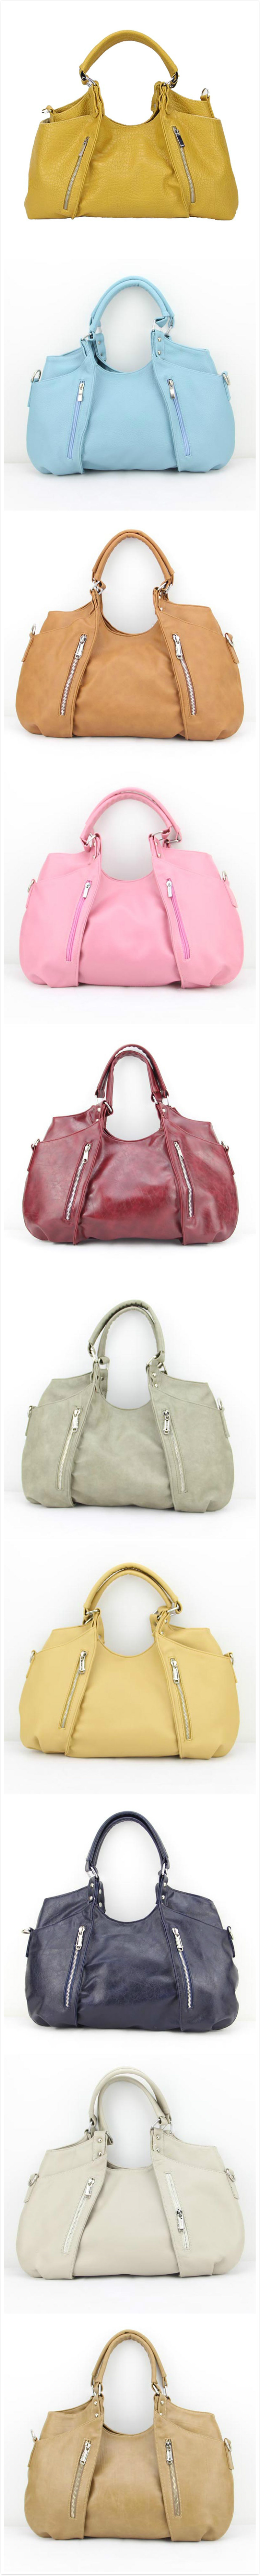 Shoulder Handbags